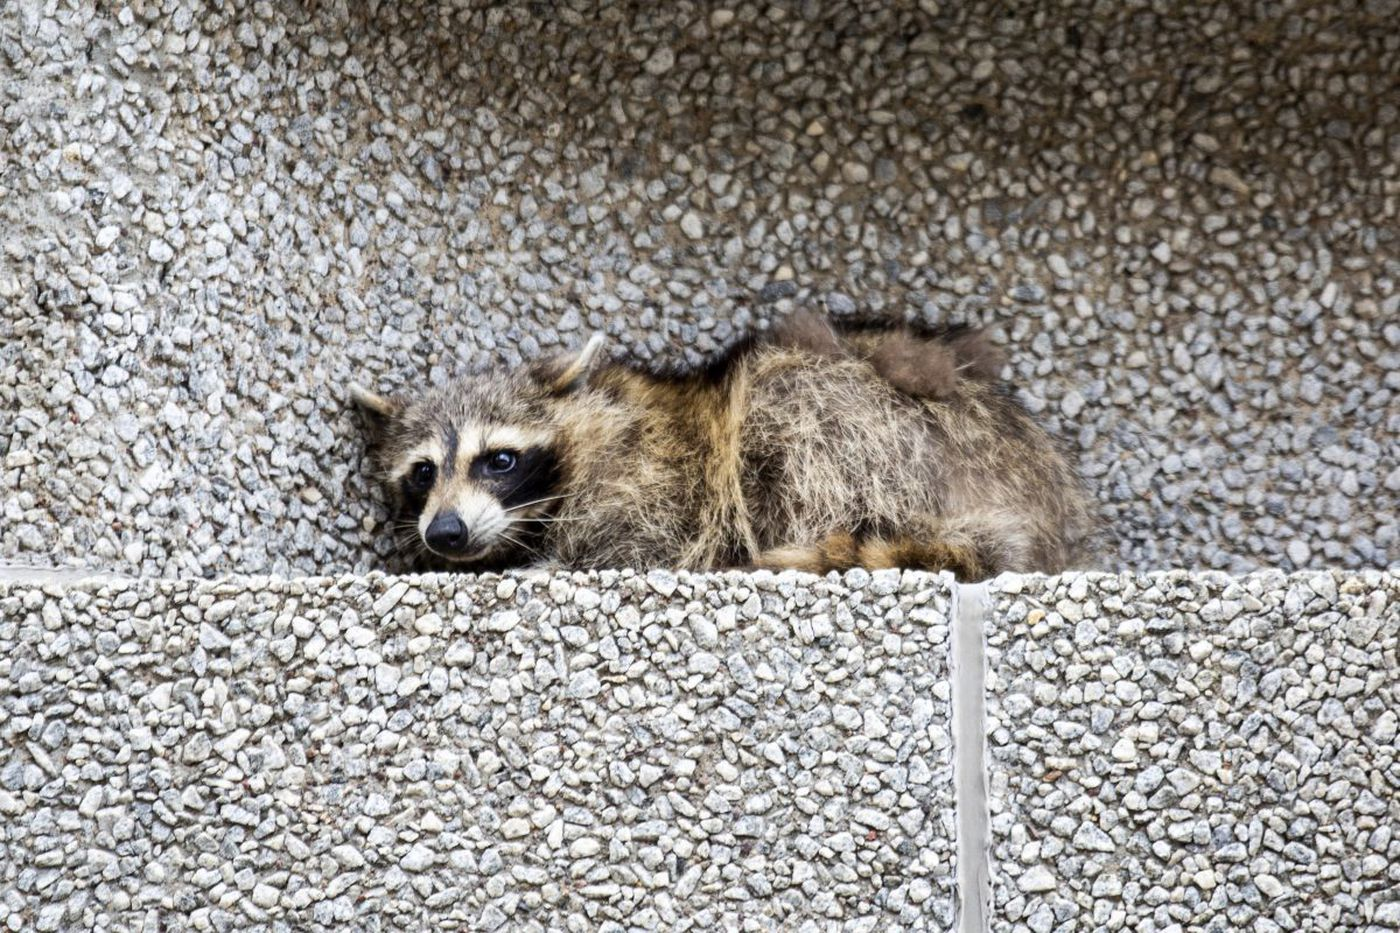 How did a raccoon make it to the top of a skyscraper? 'Superpowers,' expert says